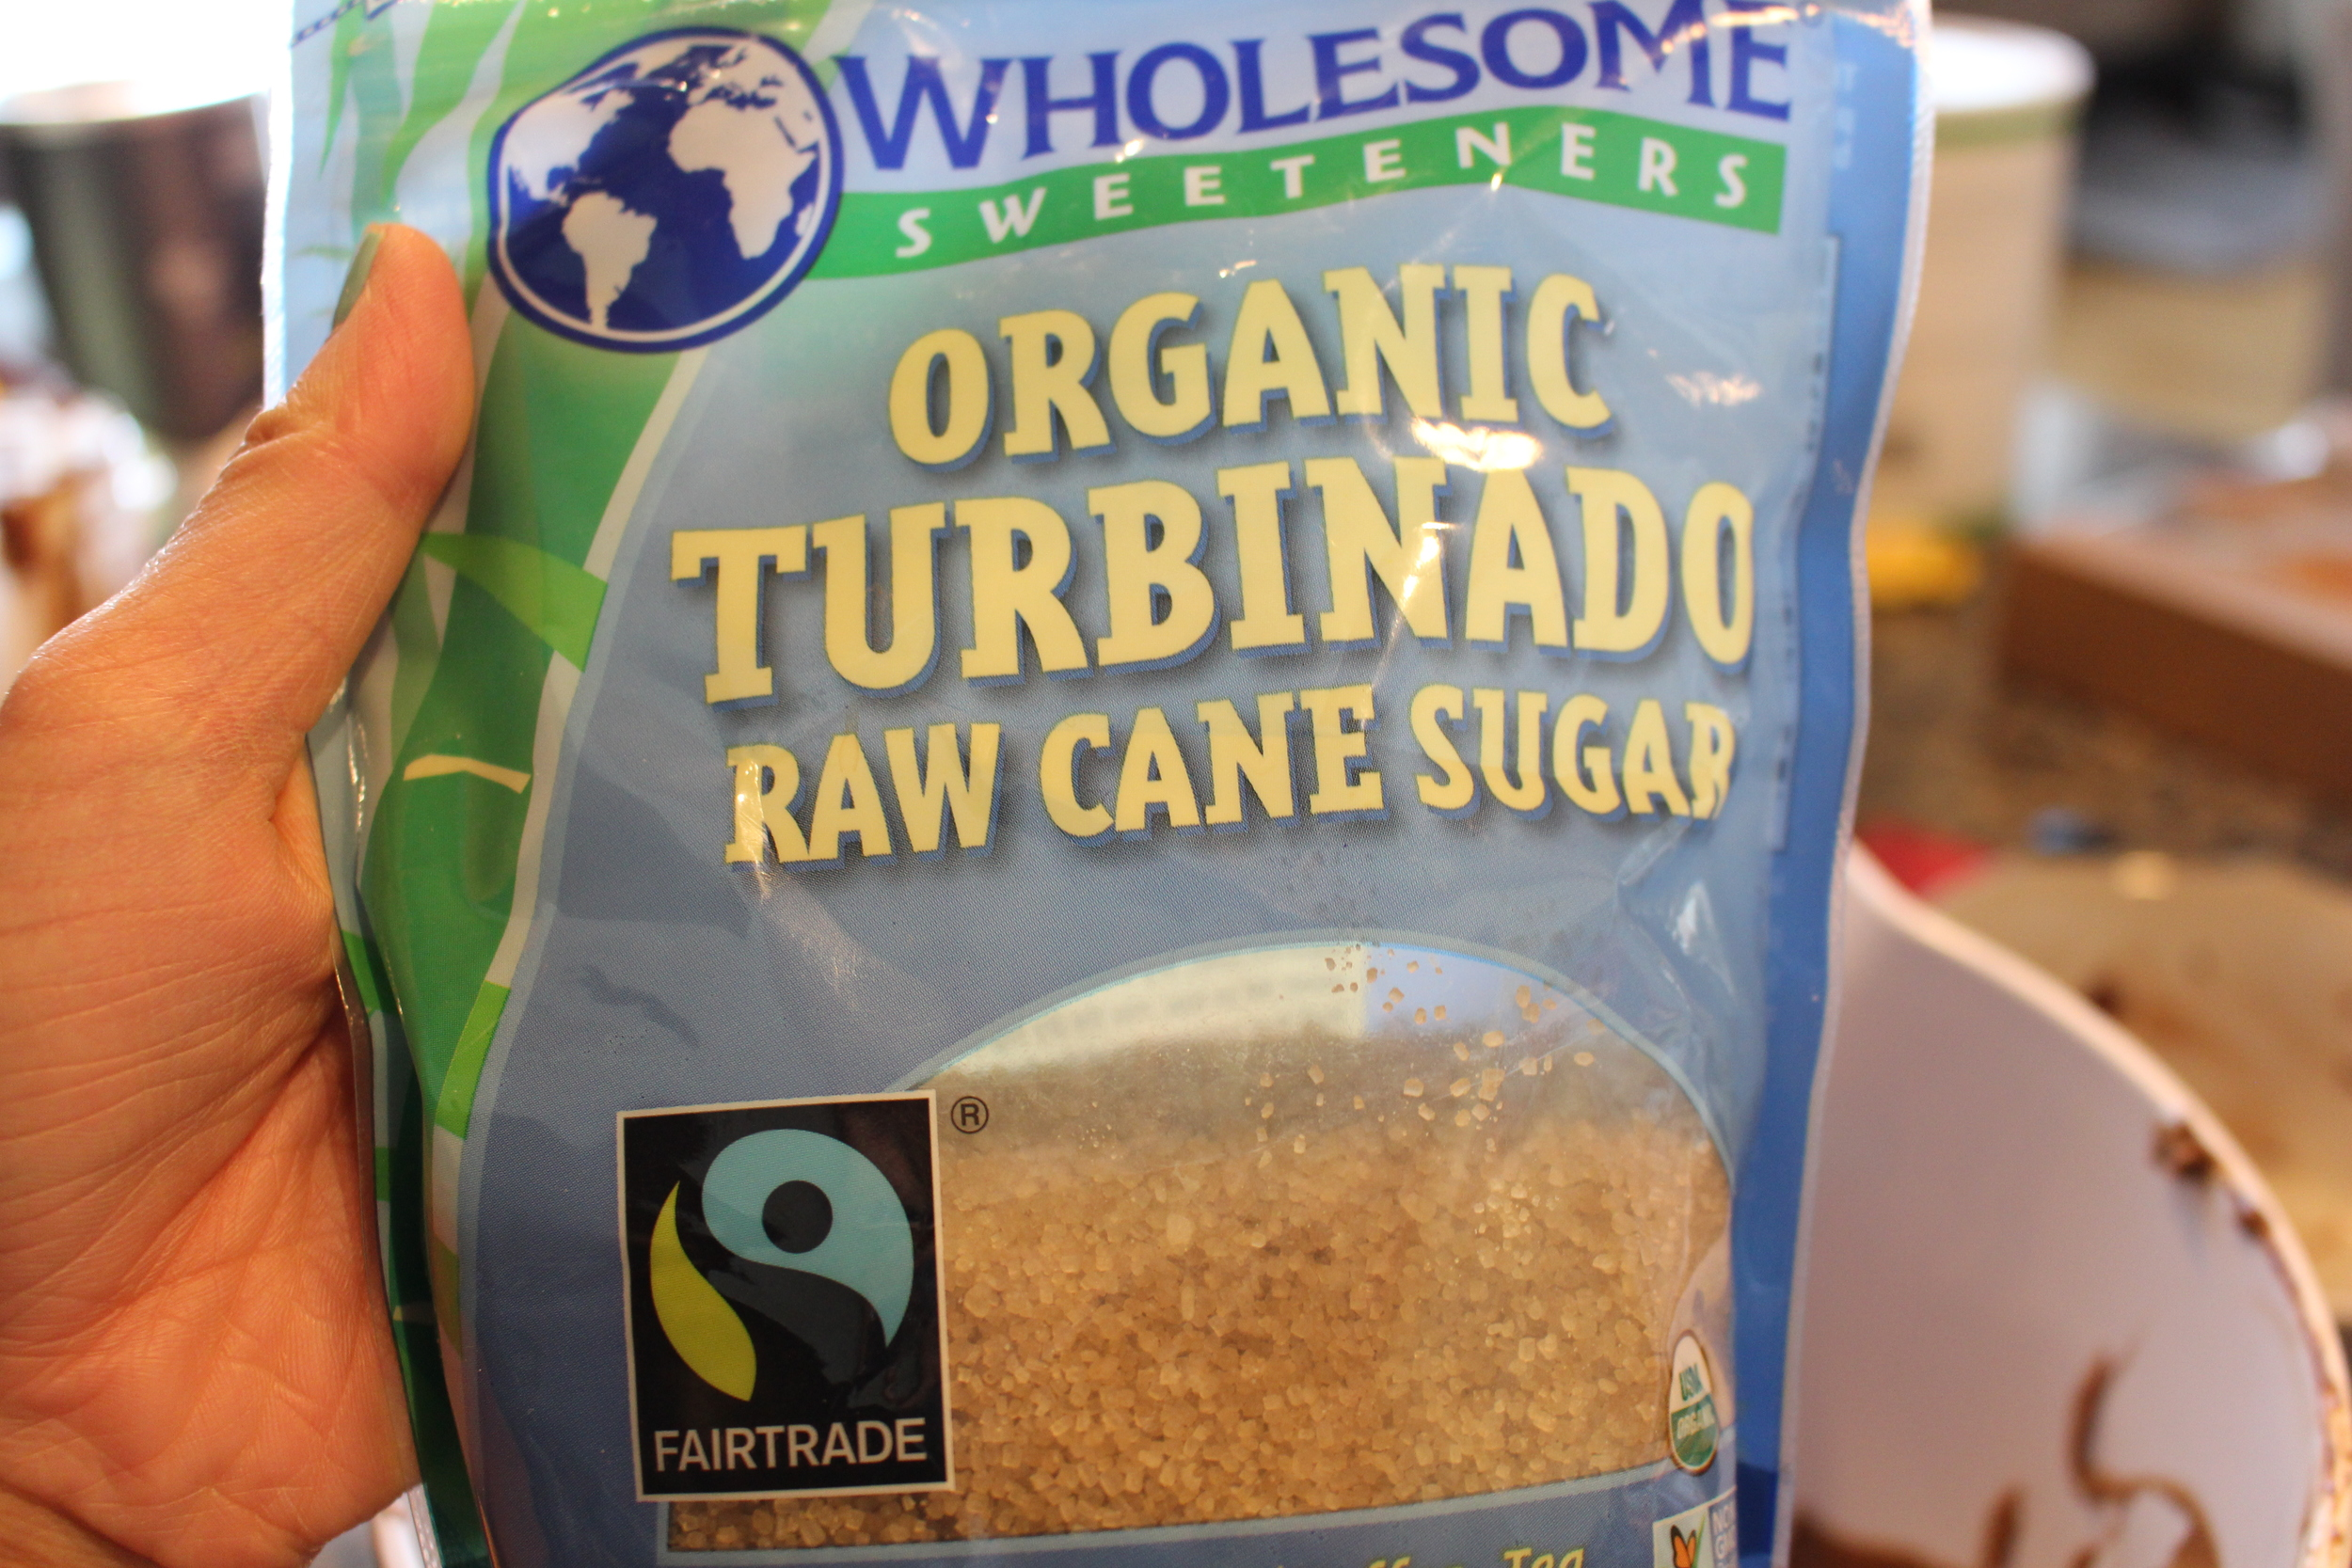 Turbinado sugar is less processed than white granulated sugar.